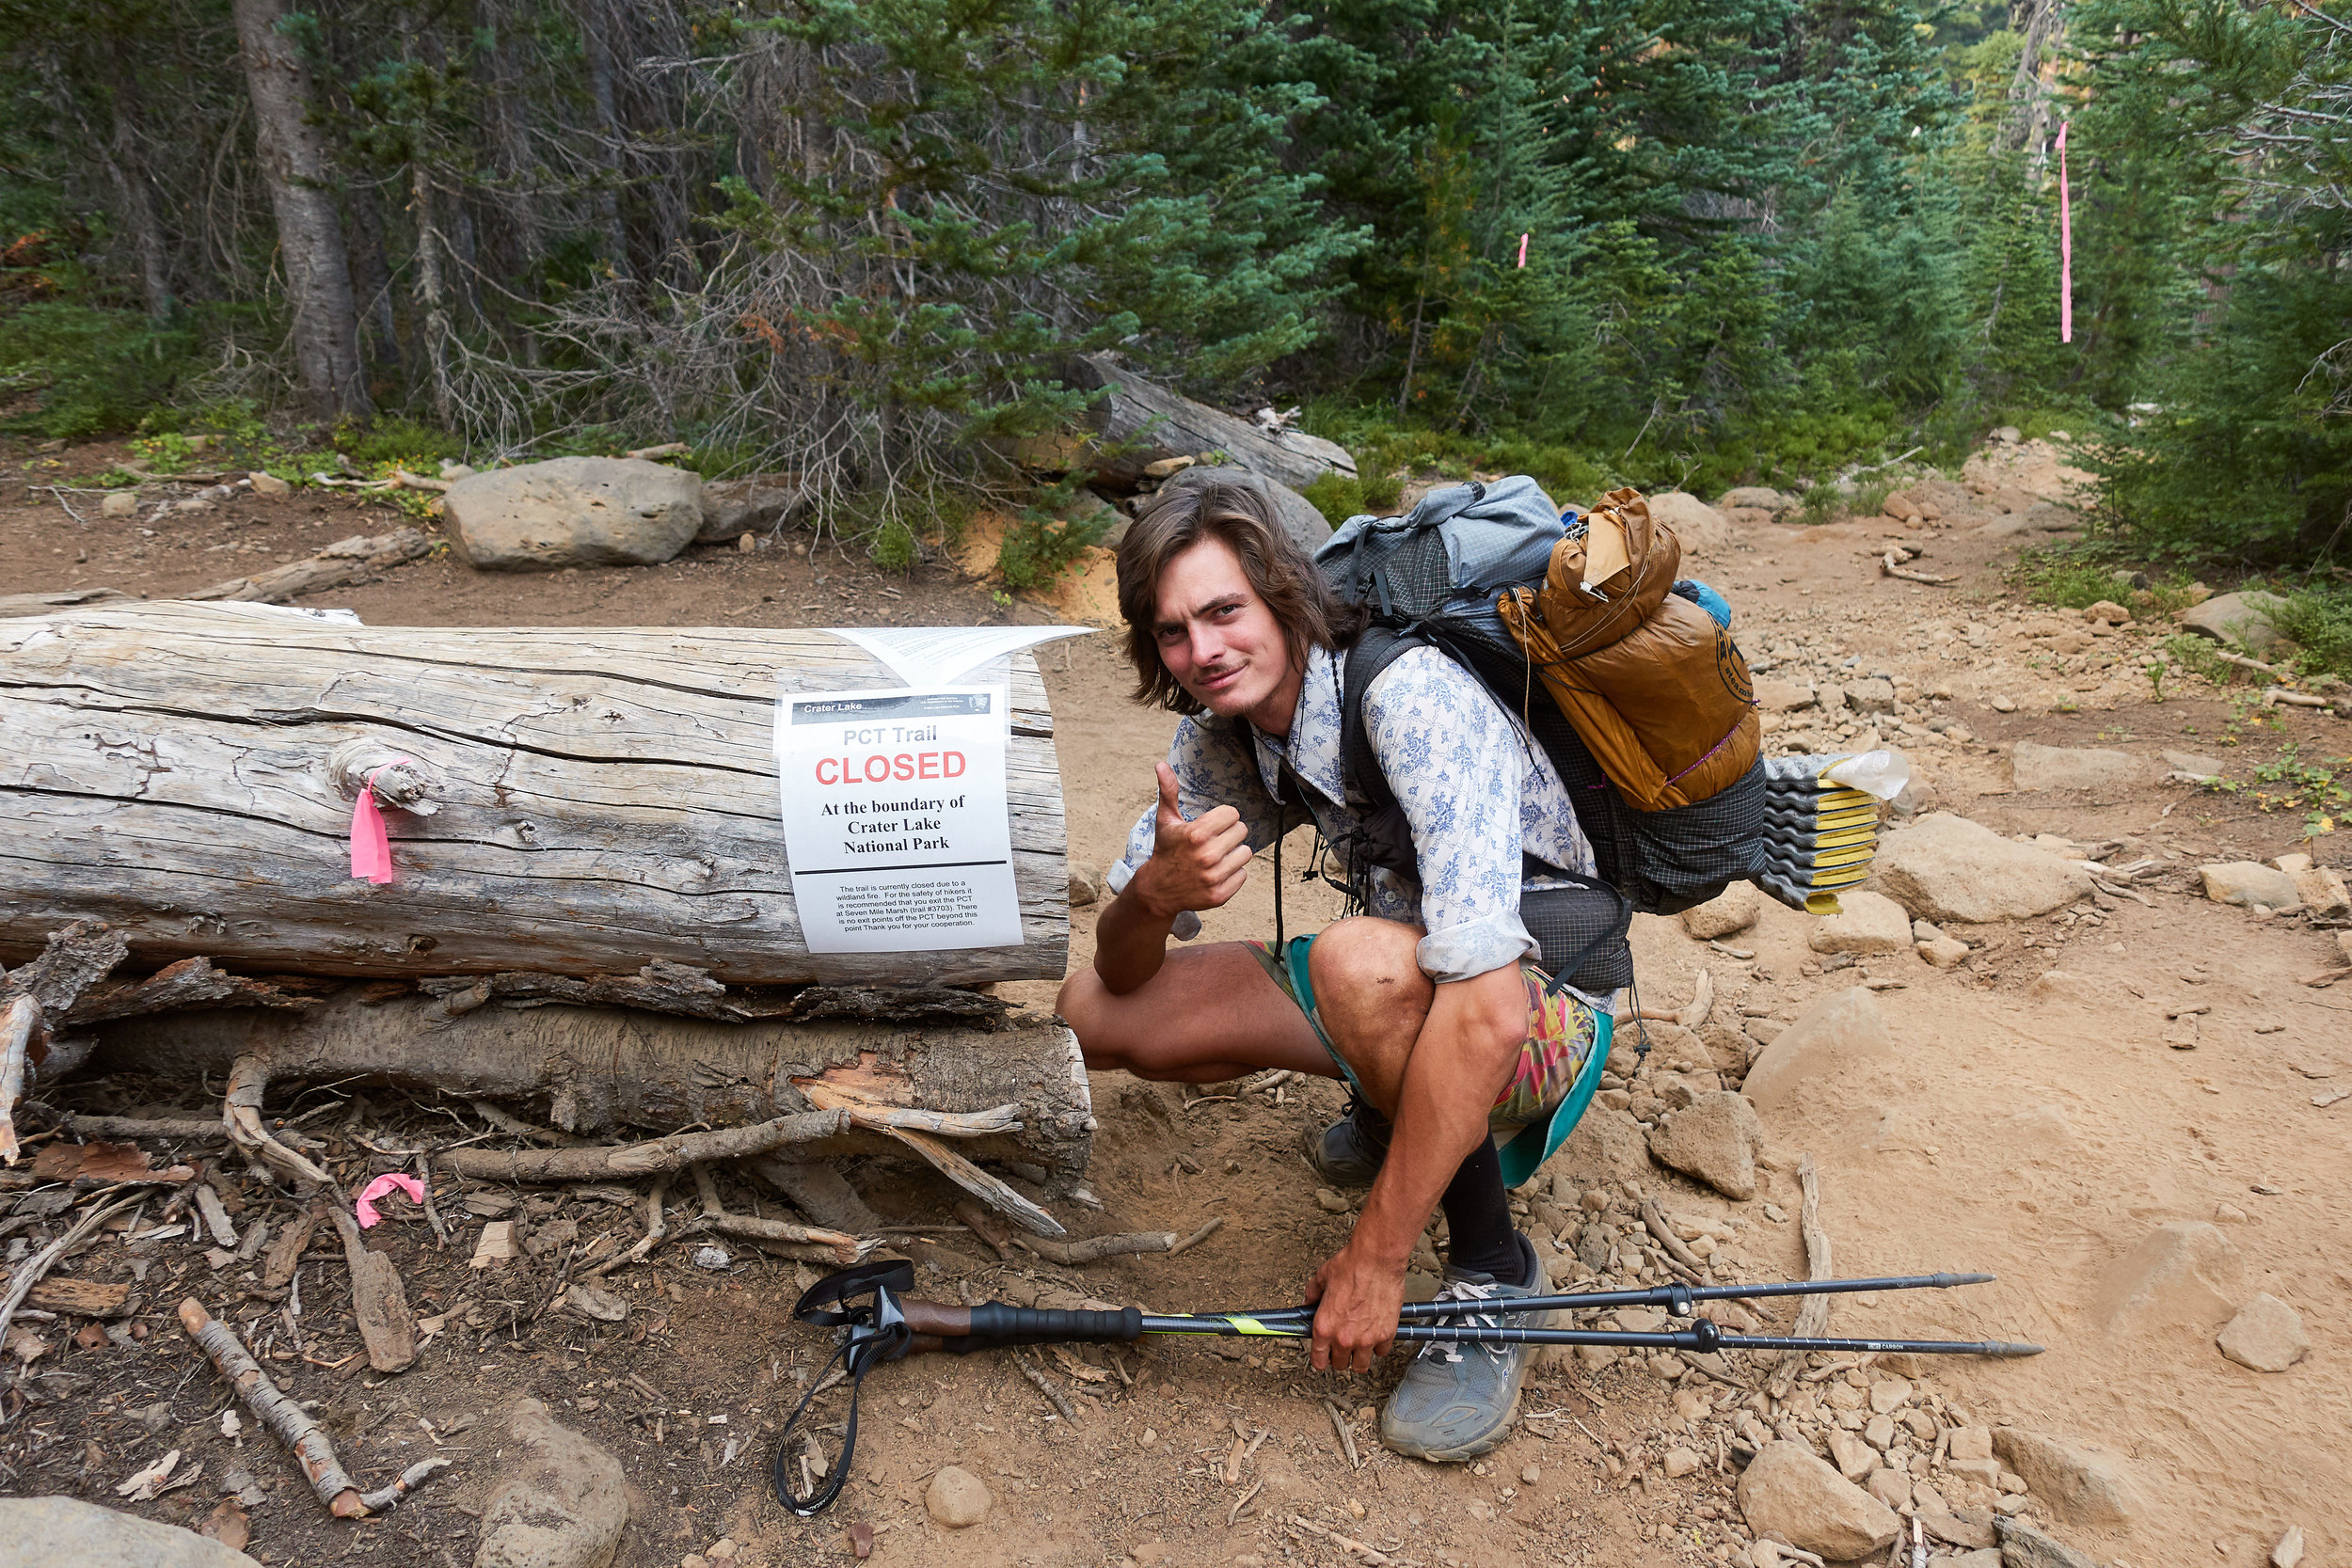 PCT trail closed.